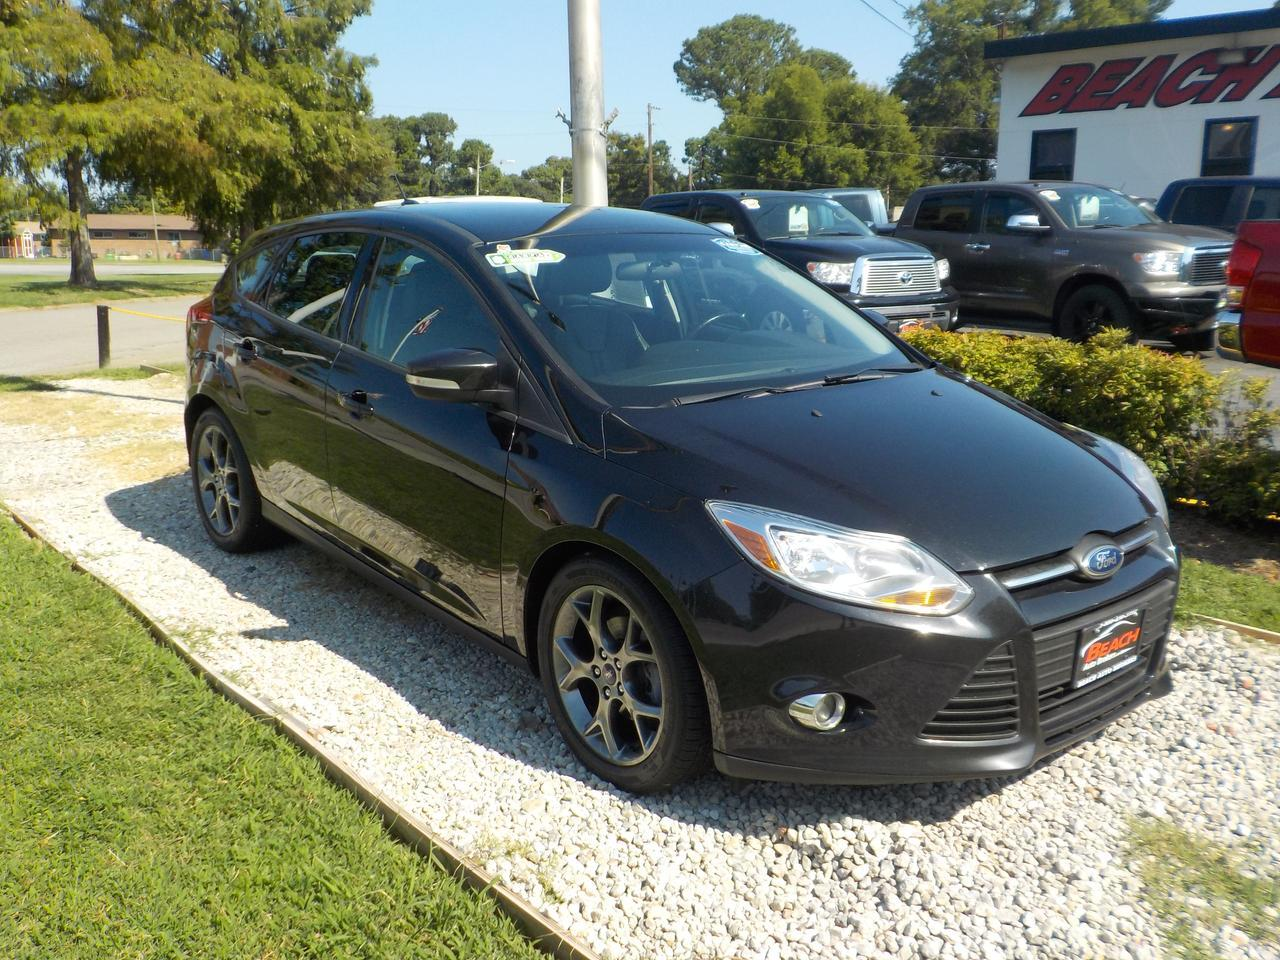 2013 Ford Focus Se Hatchback >> 2013 Ford Focus Se Hatchback Warranty Leather Keyless Entry Usb Port Aux Port 1 Owner